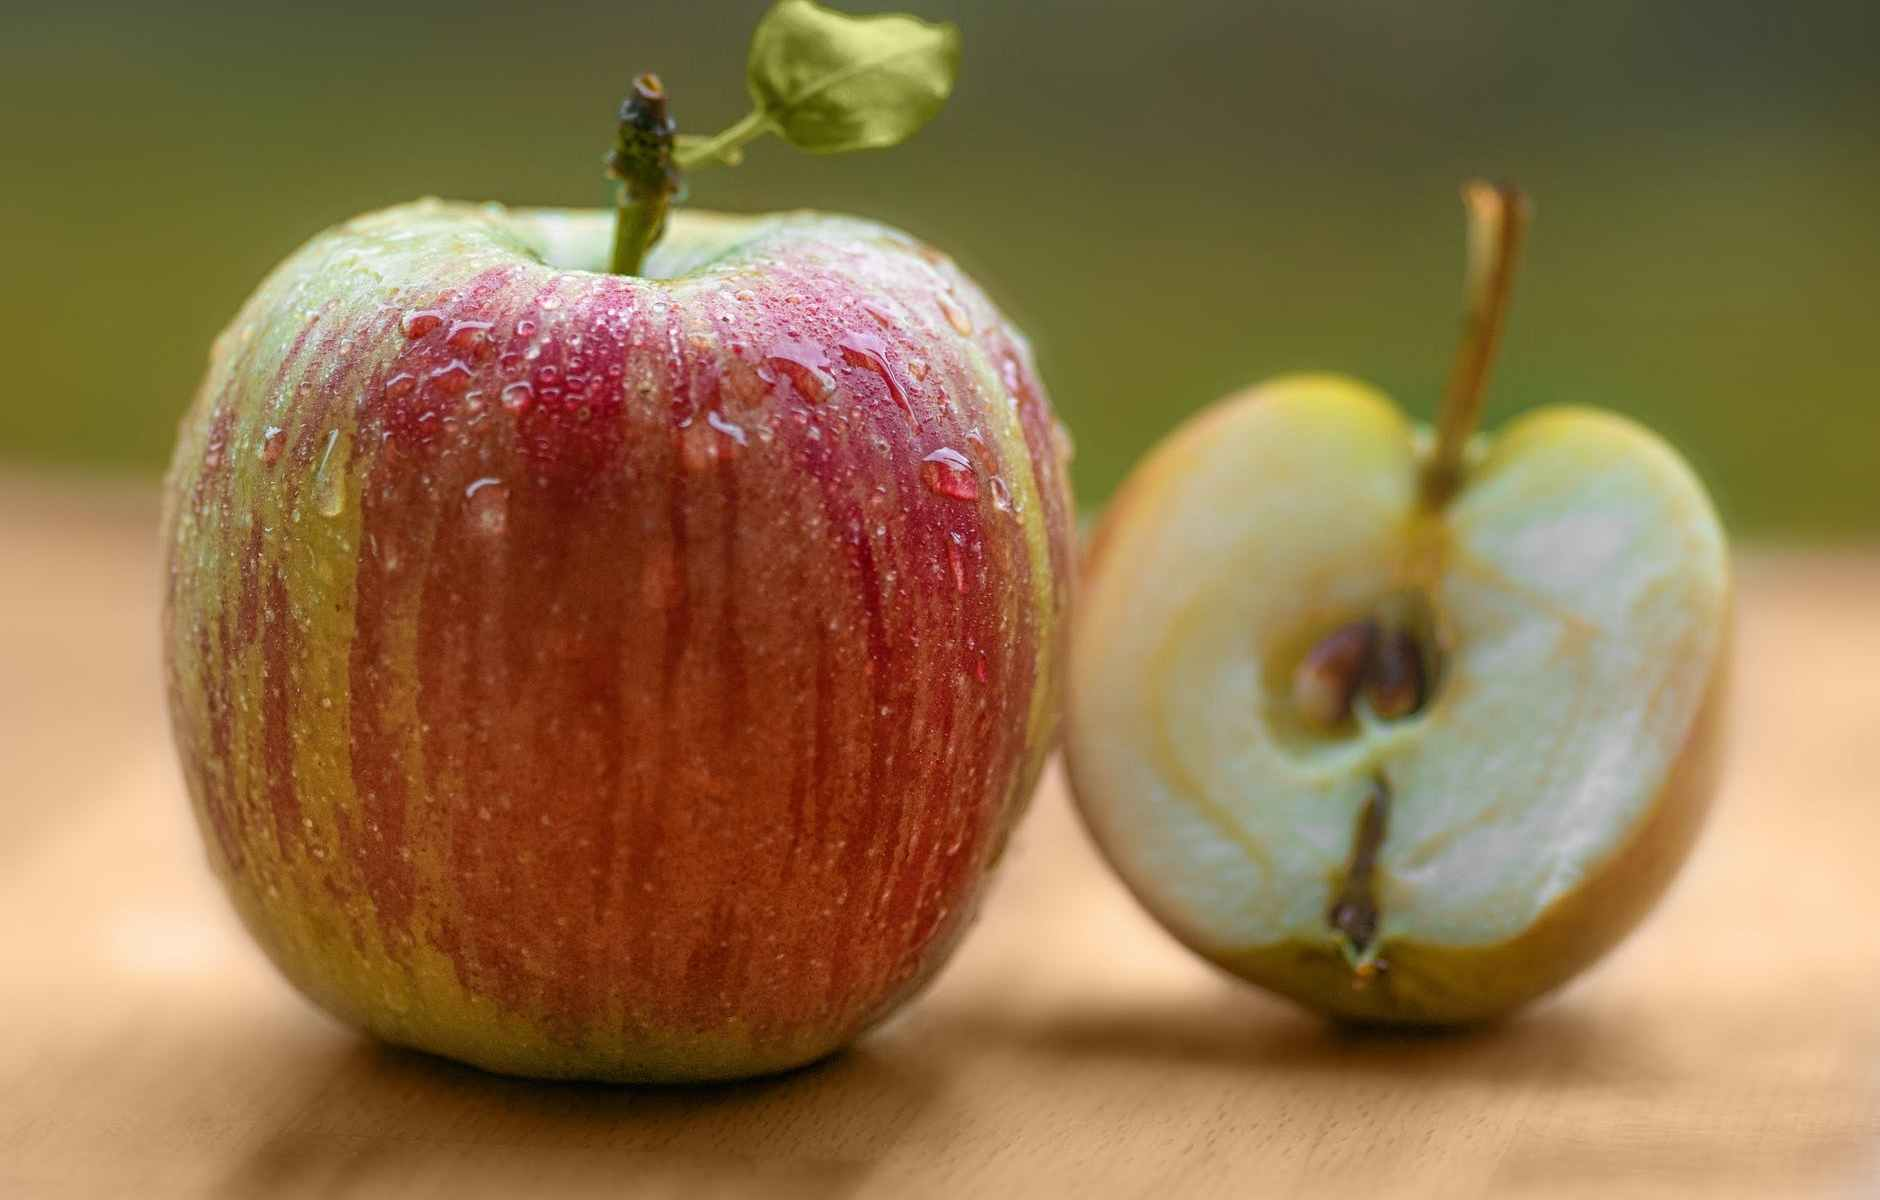 red and green apples on brown surface